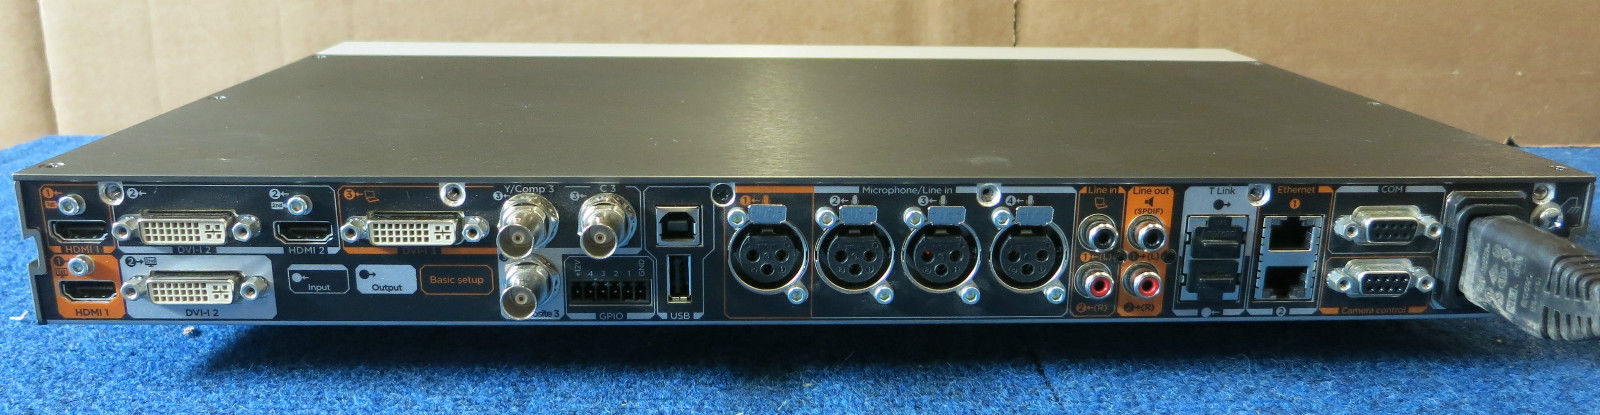 tandberg cisco codec c60 ttc6 10 hd video conferencing unit cts rh itinstock com Cisco C40 Inputs Cisco C40 Outputs